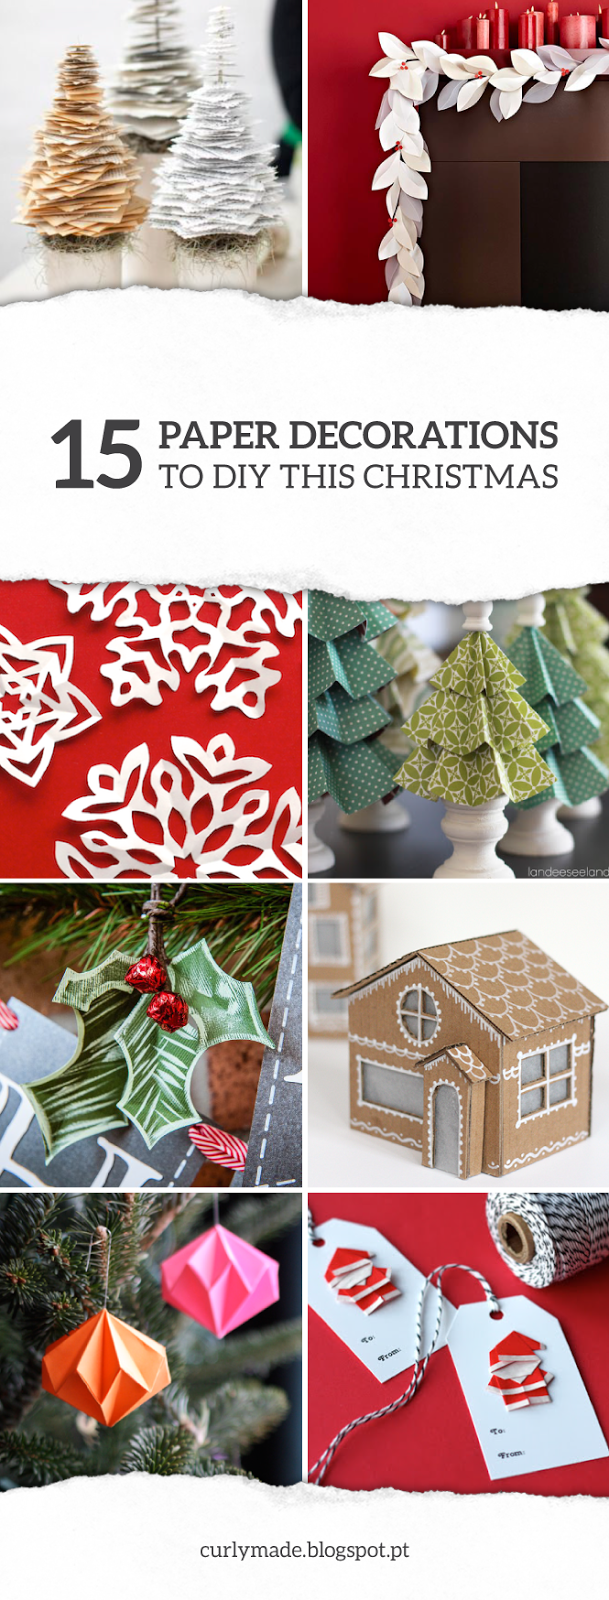 CurlyMade - 15 Paper Decorations to DIY this Christmas #holidays #crafts #decor